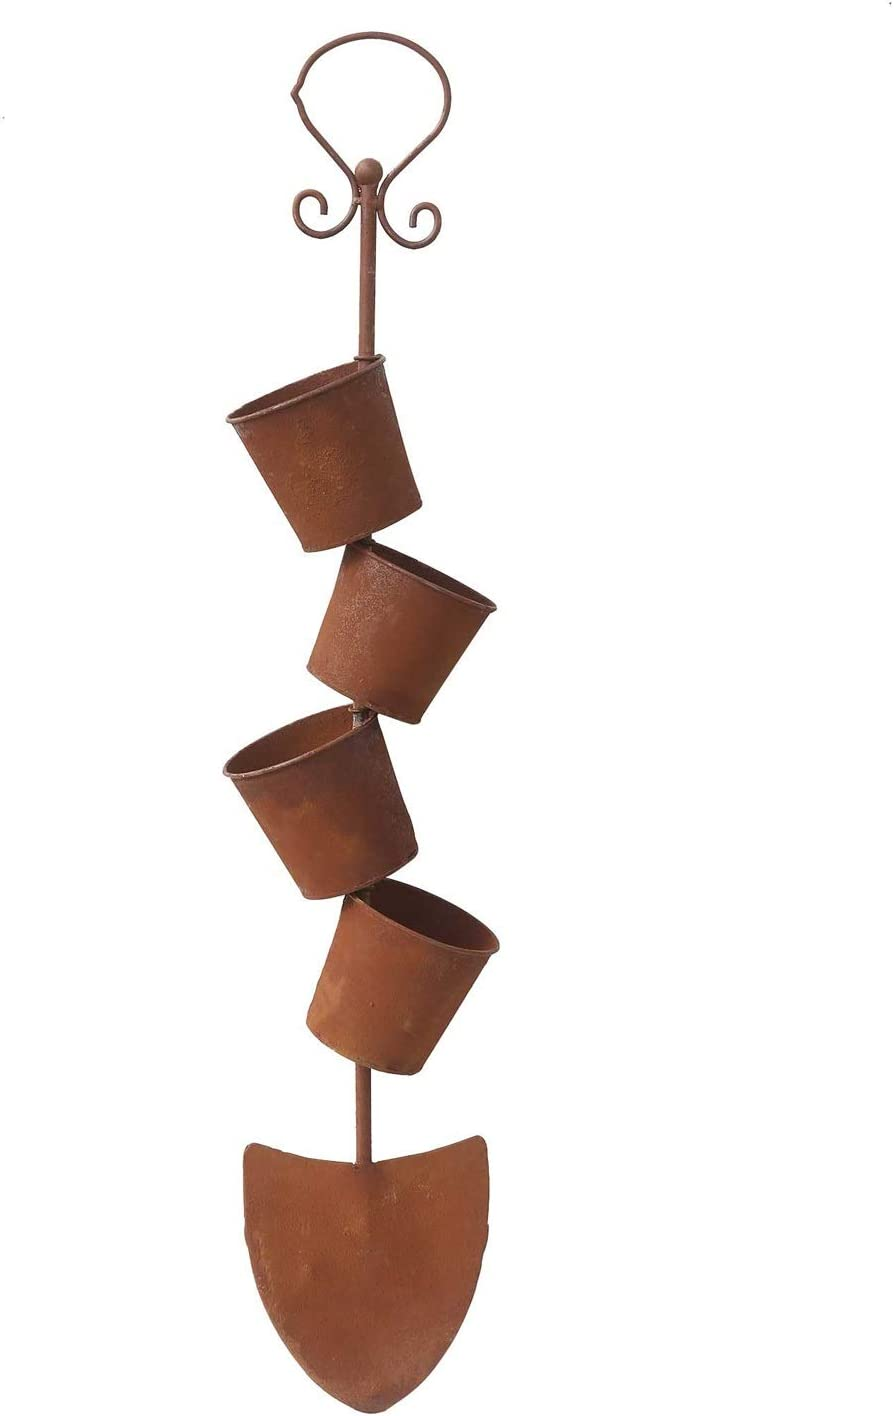 TBUDAR Flower pots mart Vintage Wrought Tall Iron A surprise price is realized Sta Pot Plant